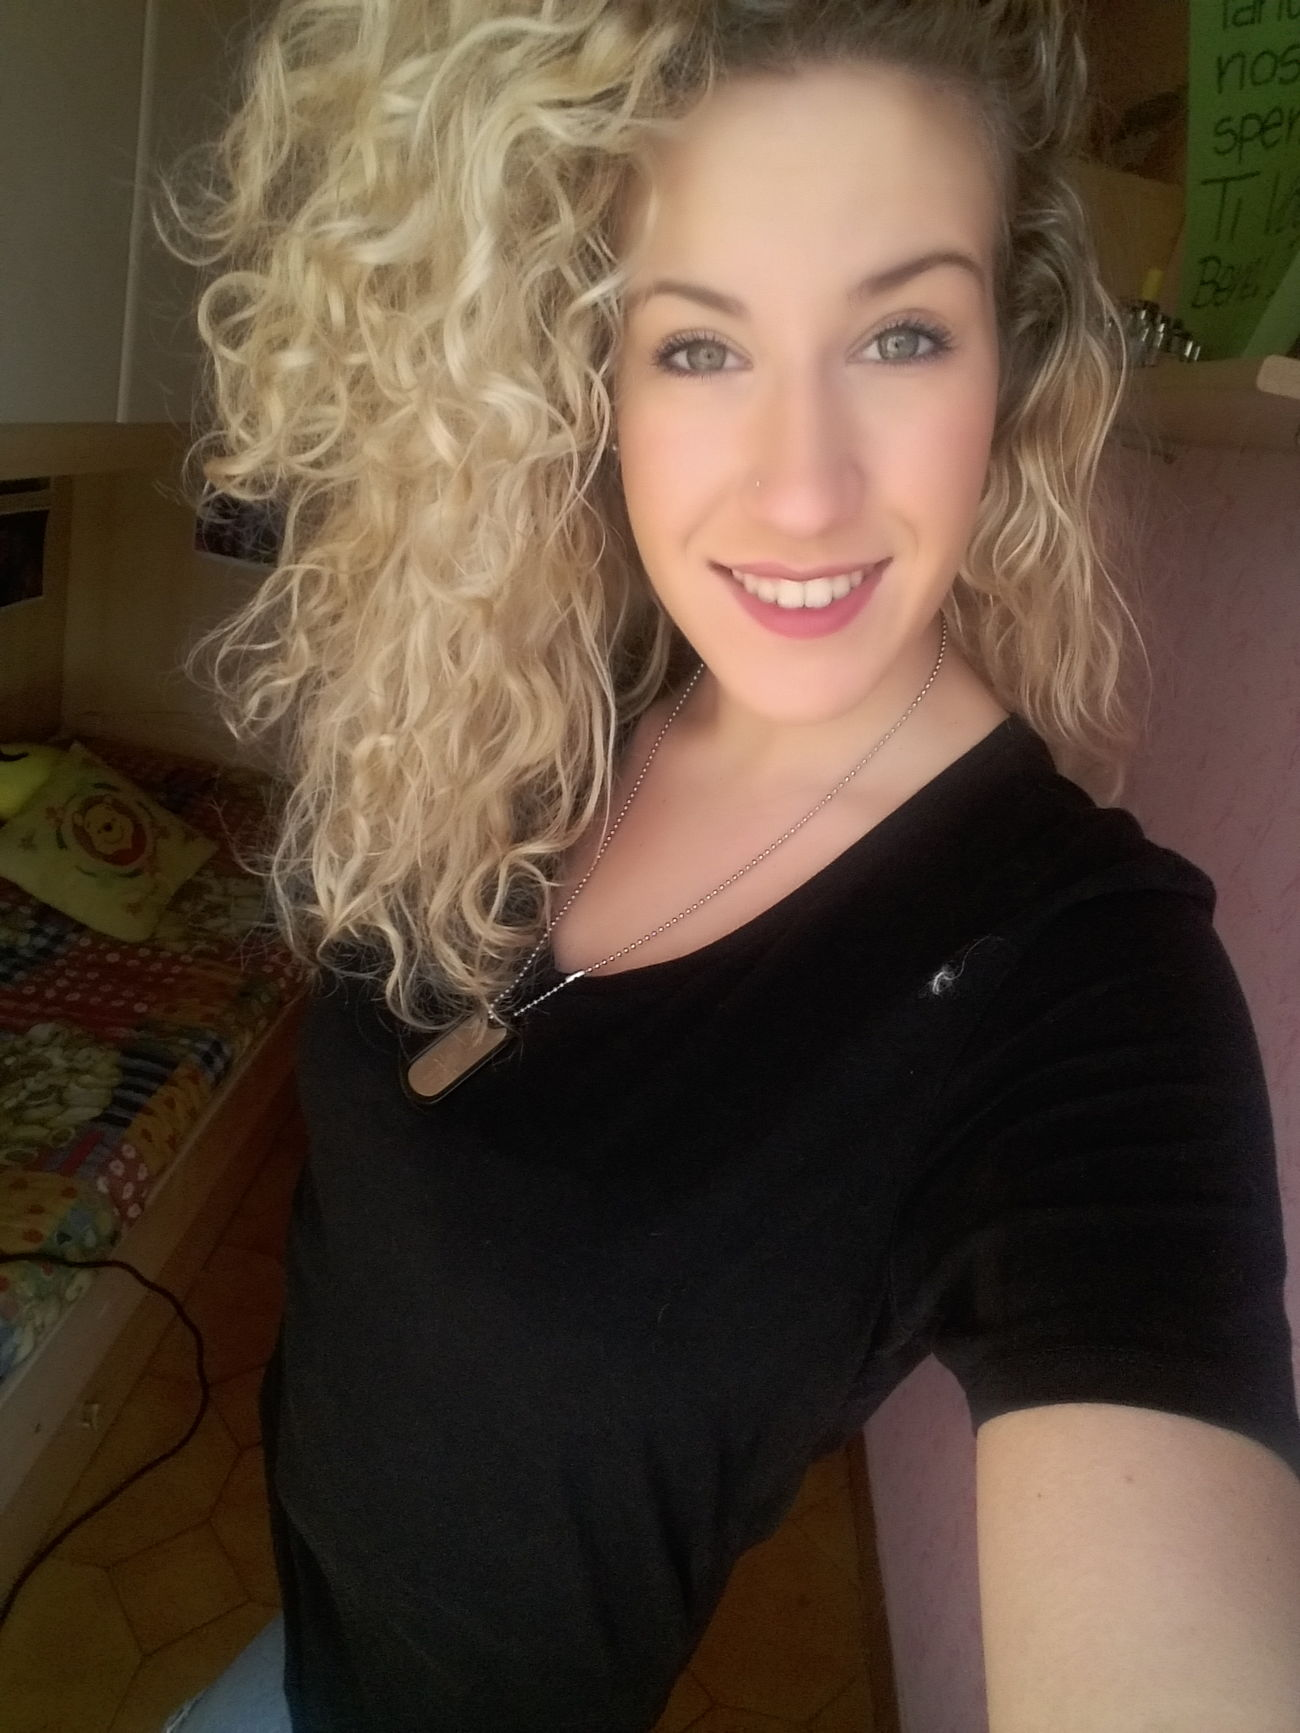 Girl Model Blonde Curly Sexygirl Italian Girl Selfie ✌ Sunday Relax Cheese Beautiful Girls